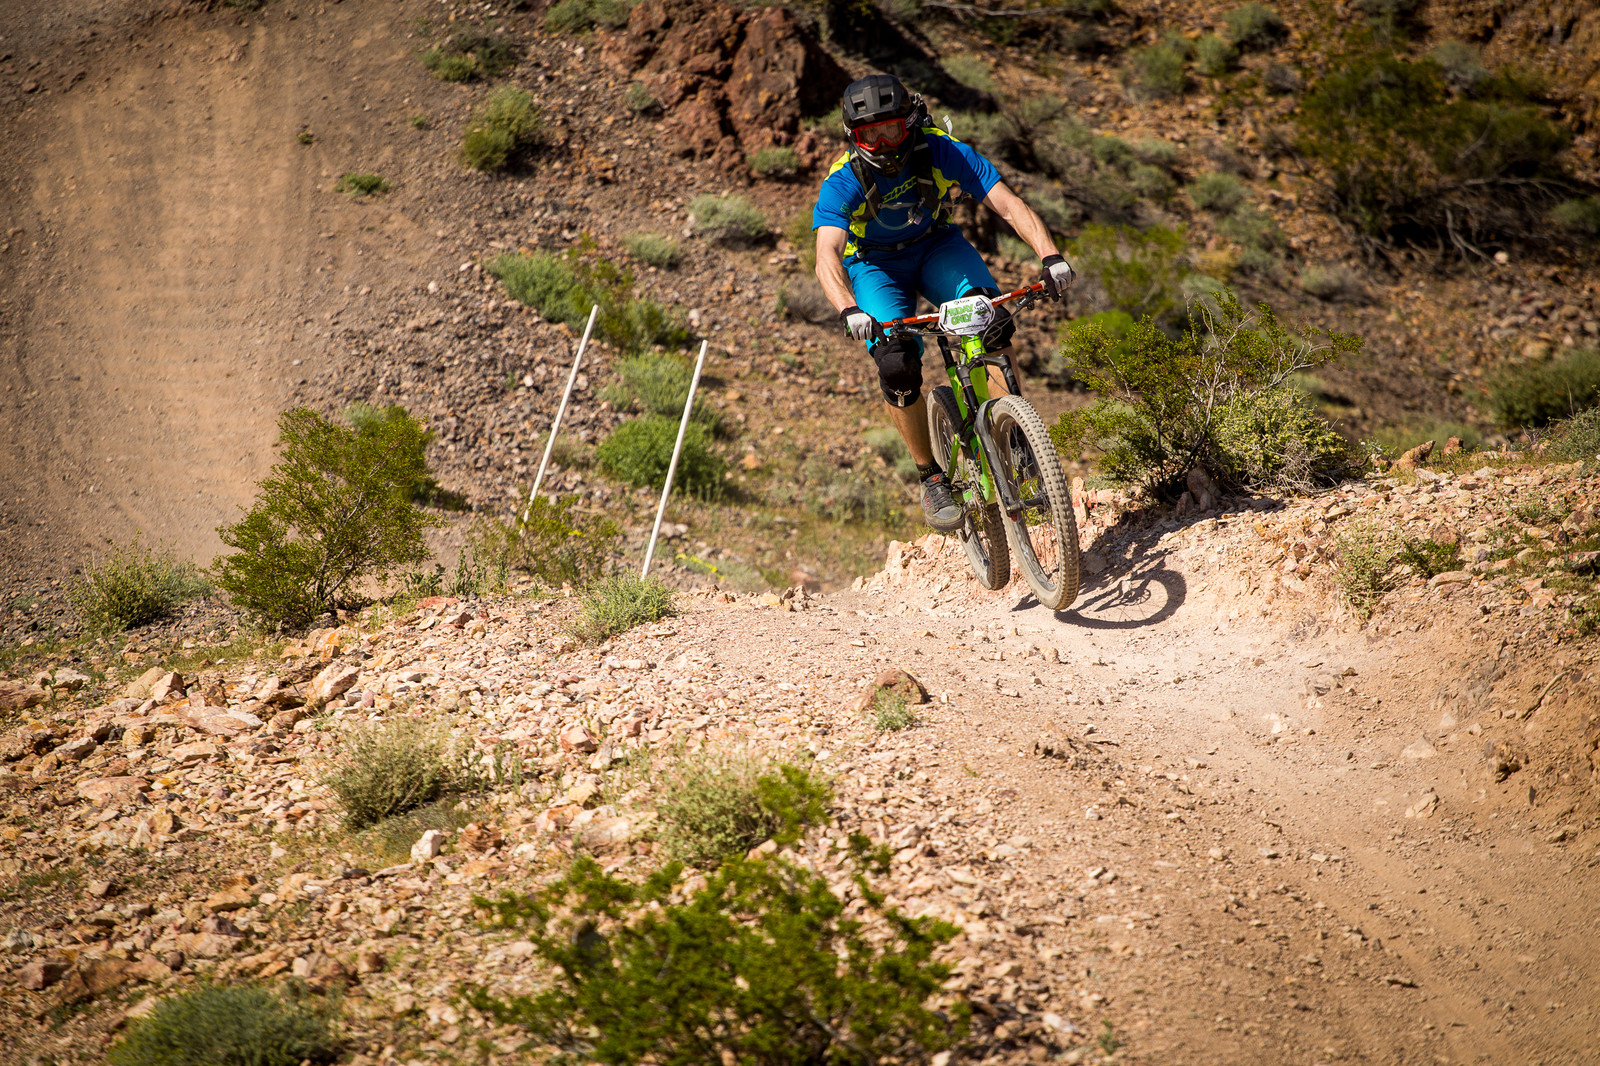 2017 Reaper Madness DH at Bootleg Canyon-7 - 2017 Reaper Madness DH Photos - Mountain Biking Pictures - Vital MTB